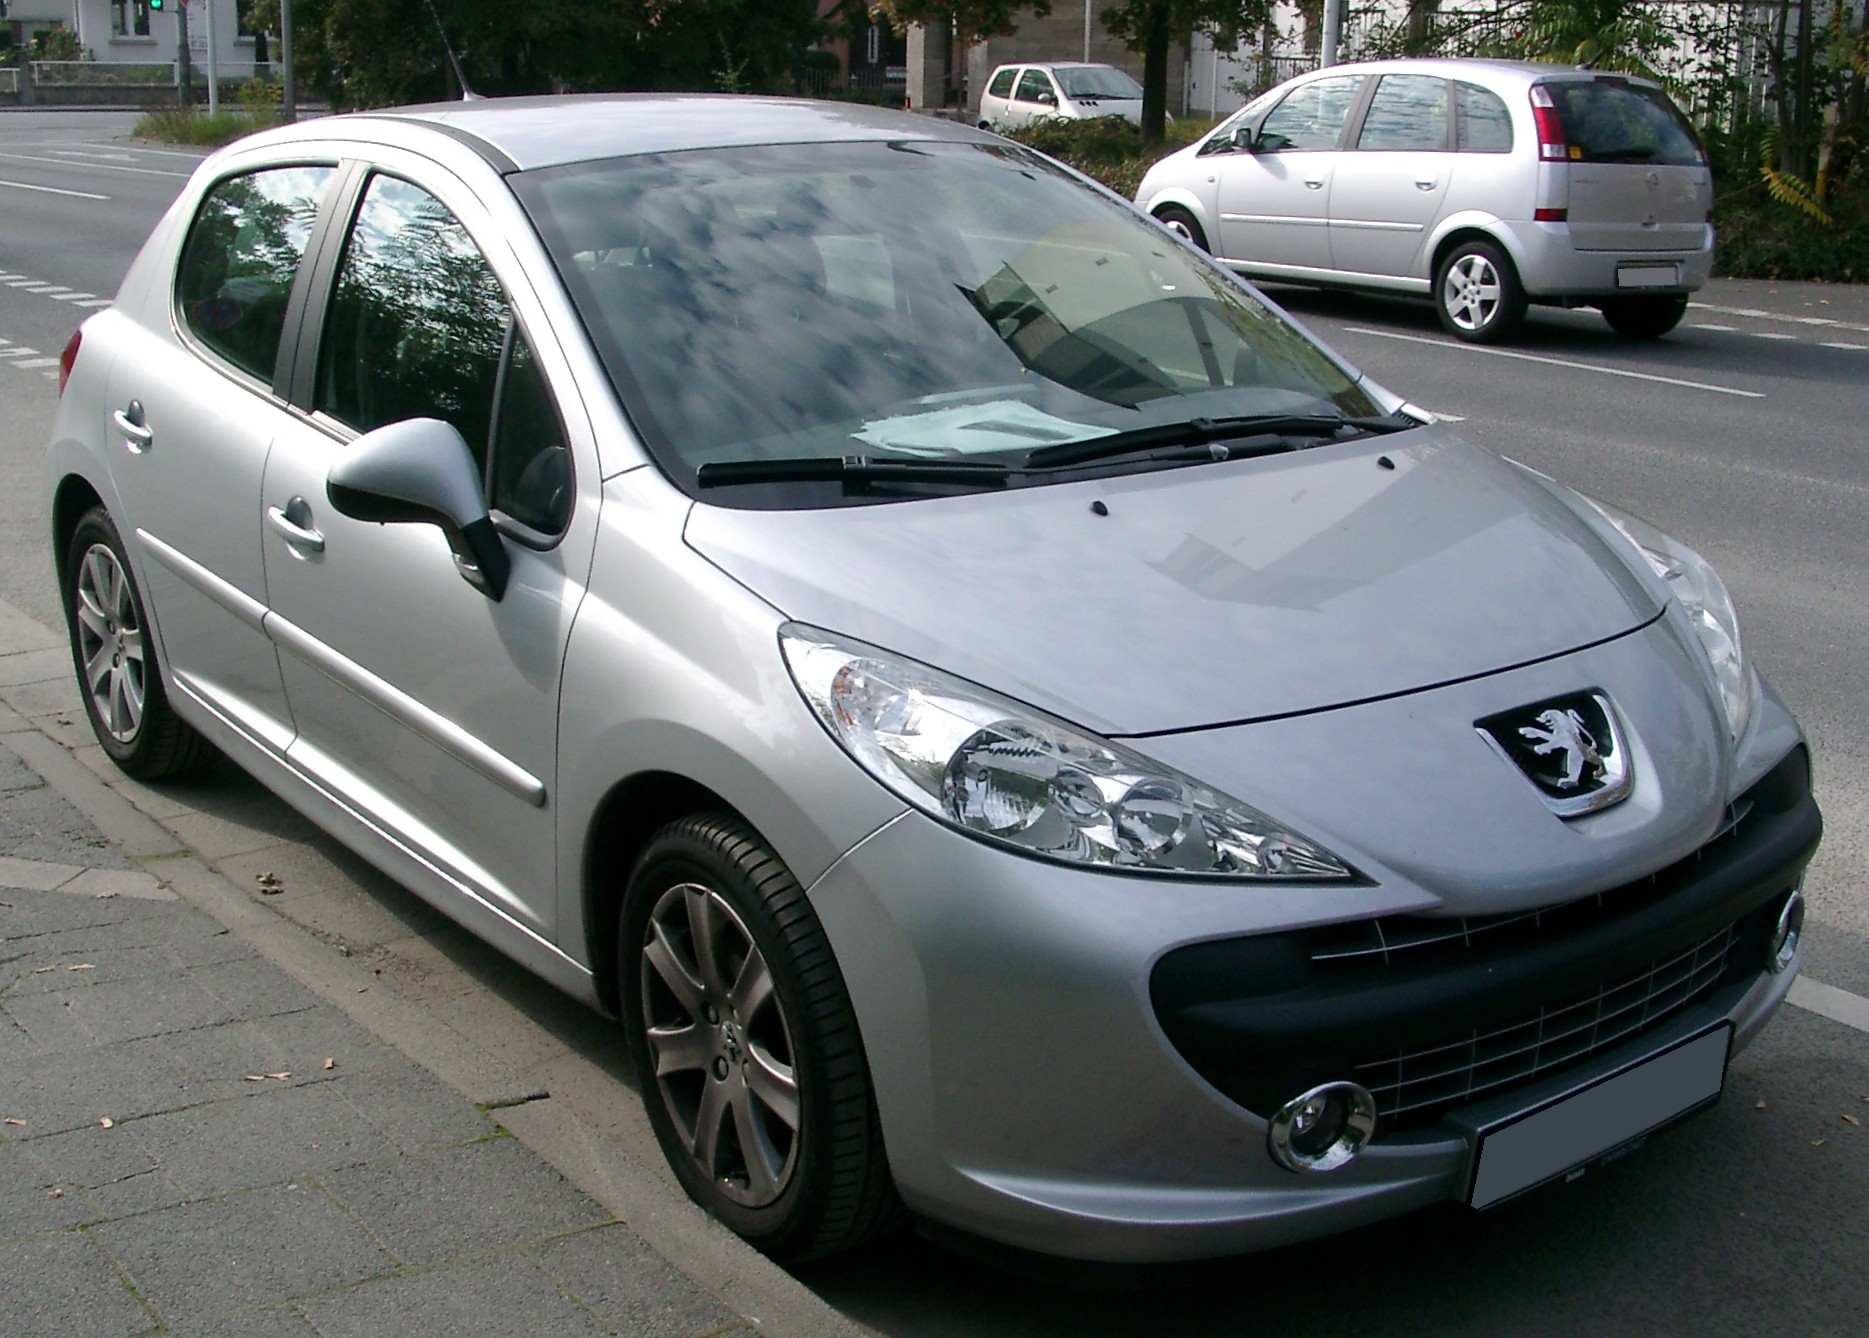 New Peugeot 209 >> Peugeot 207 Reviews - Peugeot 207 Car Reviews